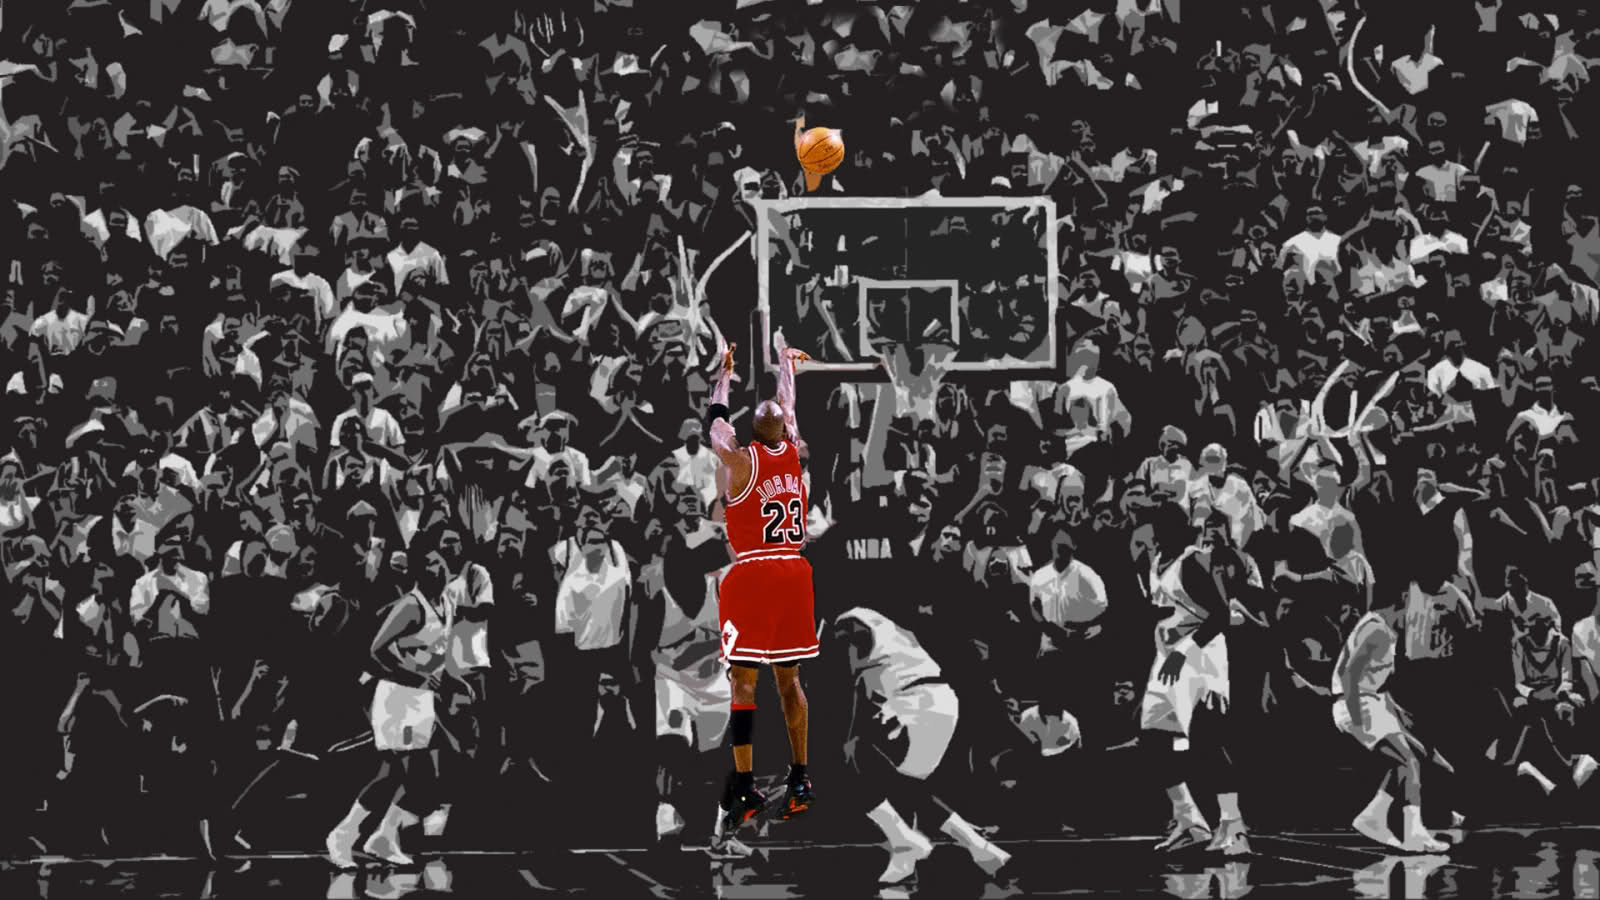 Michael Jordan Hd Wallpaper 22544 Wallpapers HD | colourinwallpaper.